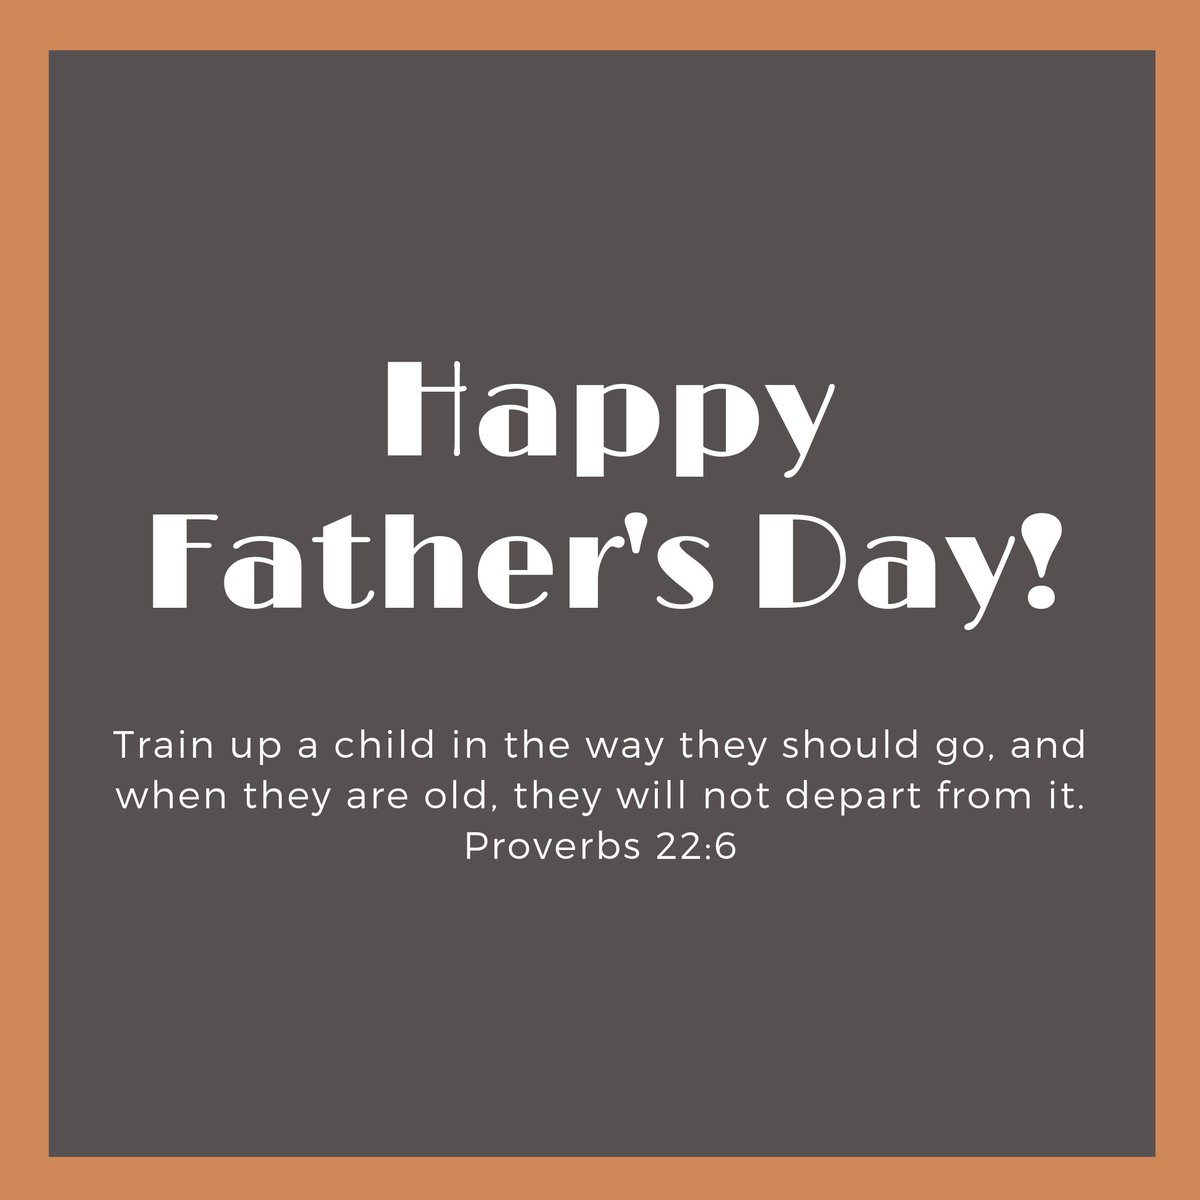 ❤️ #HappyFathersDay to all the awesome men in our lives who have helped us become who we are today! 🙏🏾 Train up a child in the way they should go, and when they are old, they will not depart from it. - Proverbs 22:6 #COGKnox #KnoxvilleChurch #Scripture #Knoxville